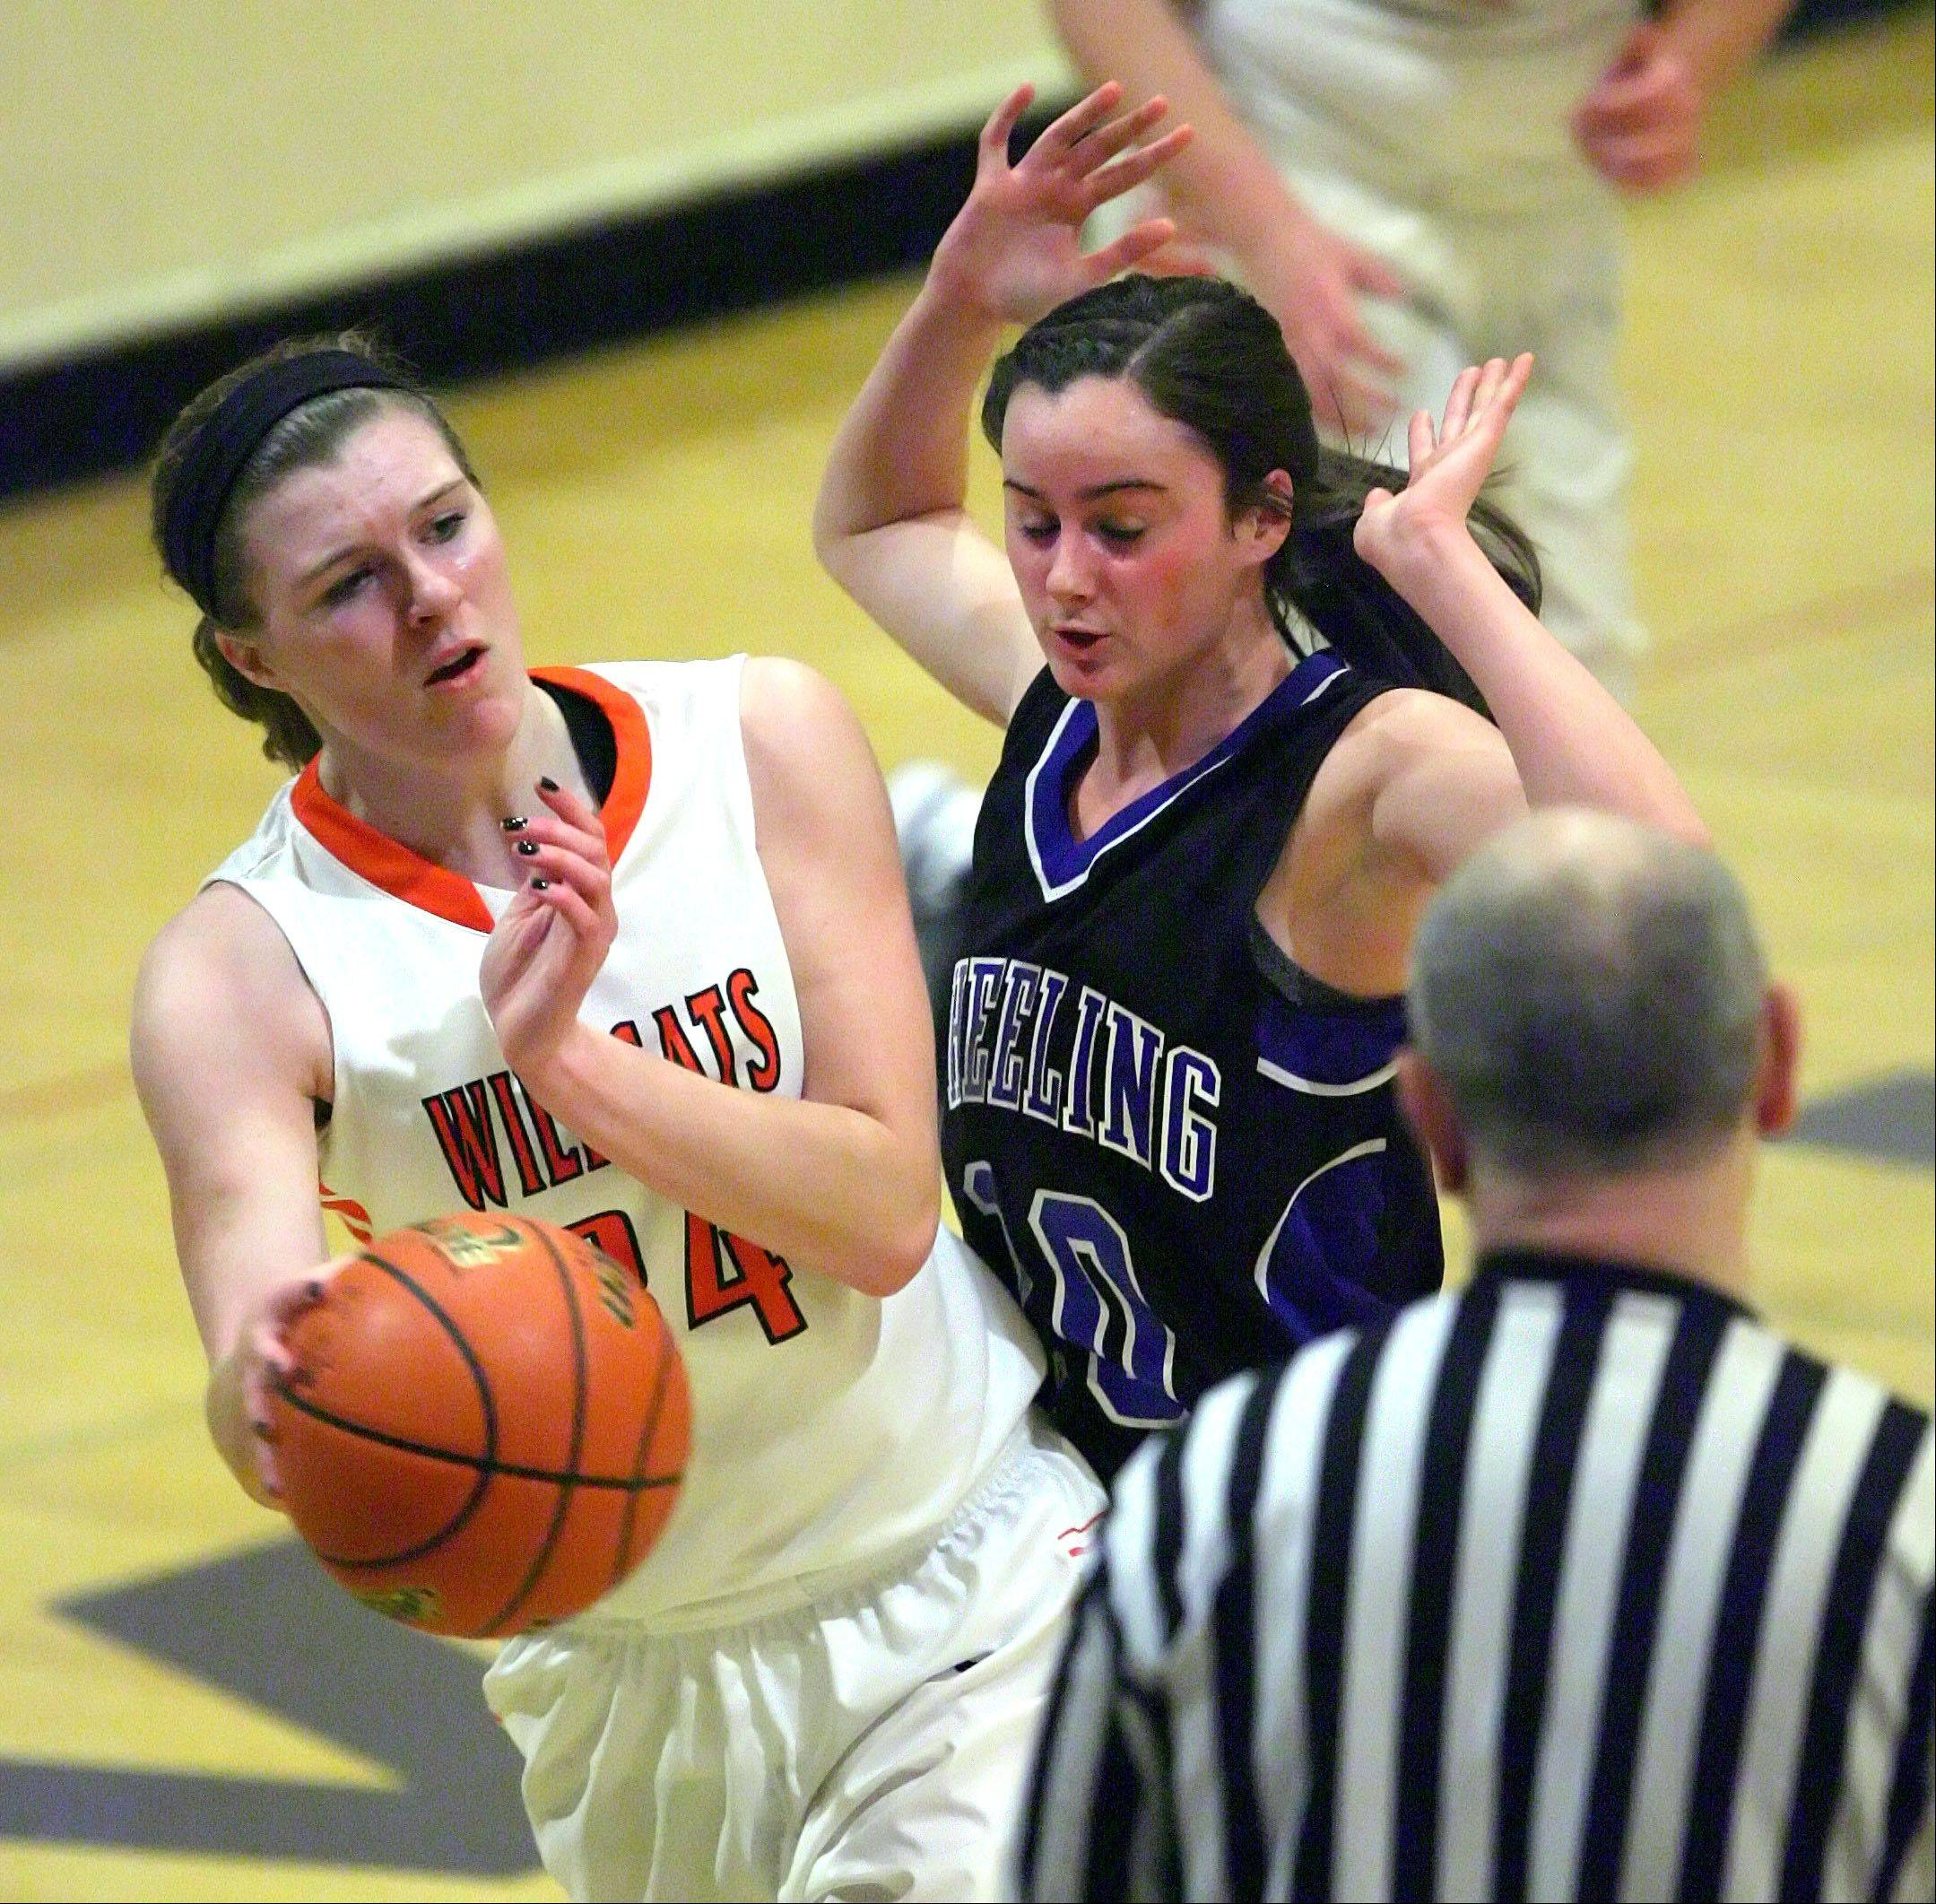 Images from the Libertyville vs. Wheeling girls basketball game on Monday, Feb. 11 in Wheeling.